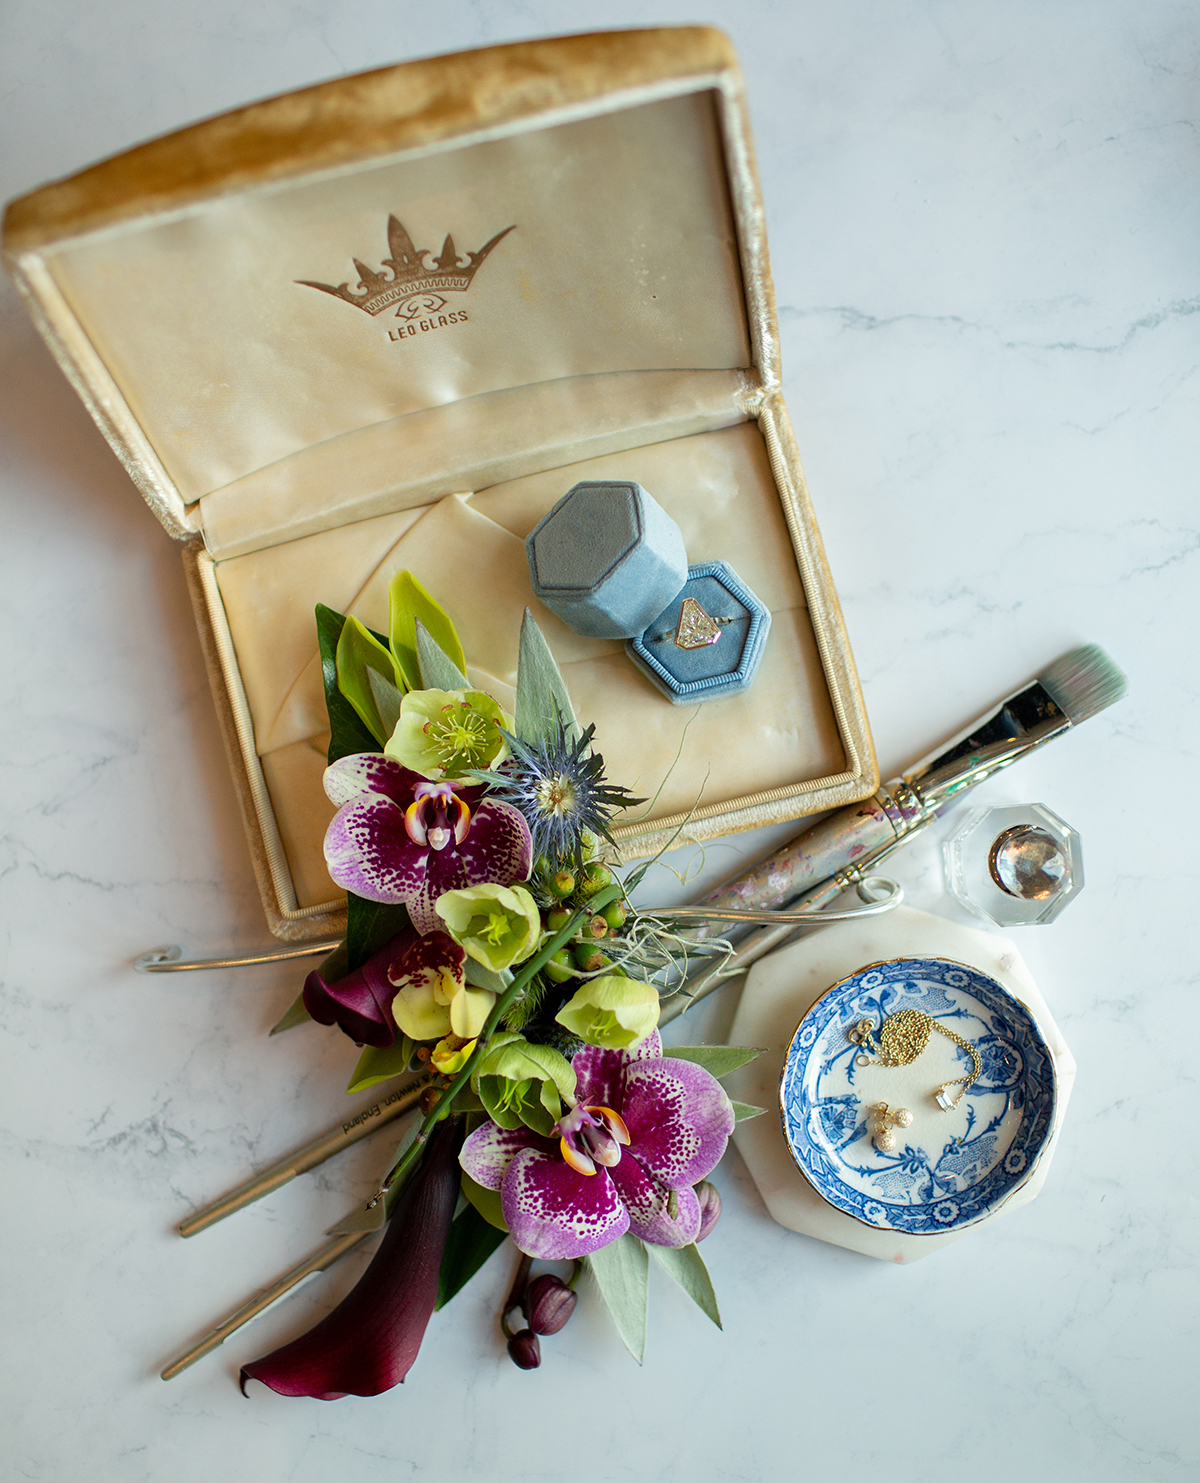 Floral and jewelry details for a styled wedding shoot for New Orleans Weddings Magazine. Photo: Sarah Alleman Photography